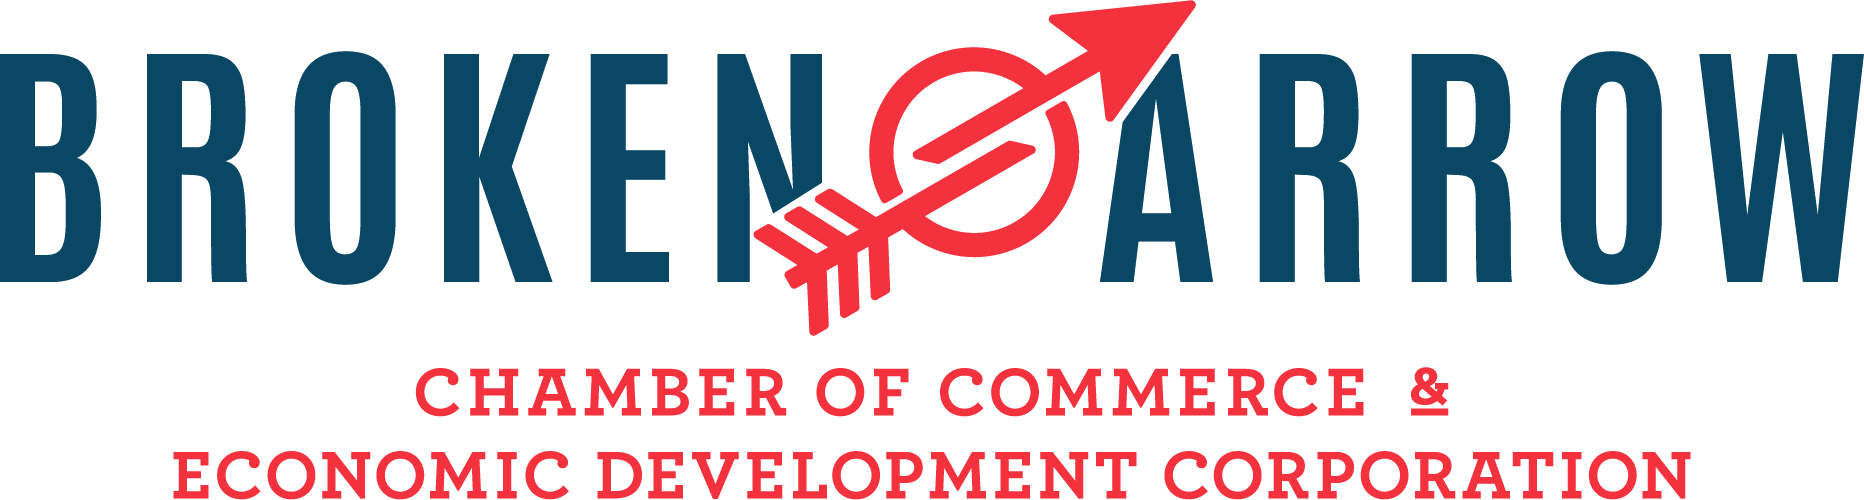 Broken Arrow Chamber Of Commerce and Economic Development Corporation Slide Image